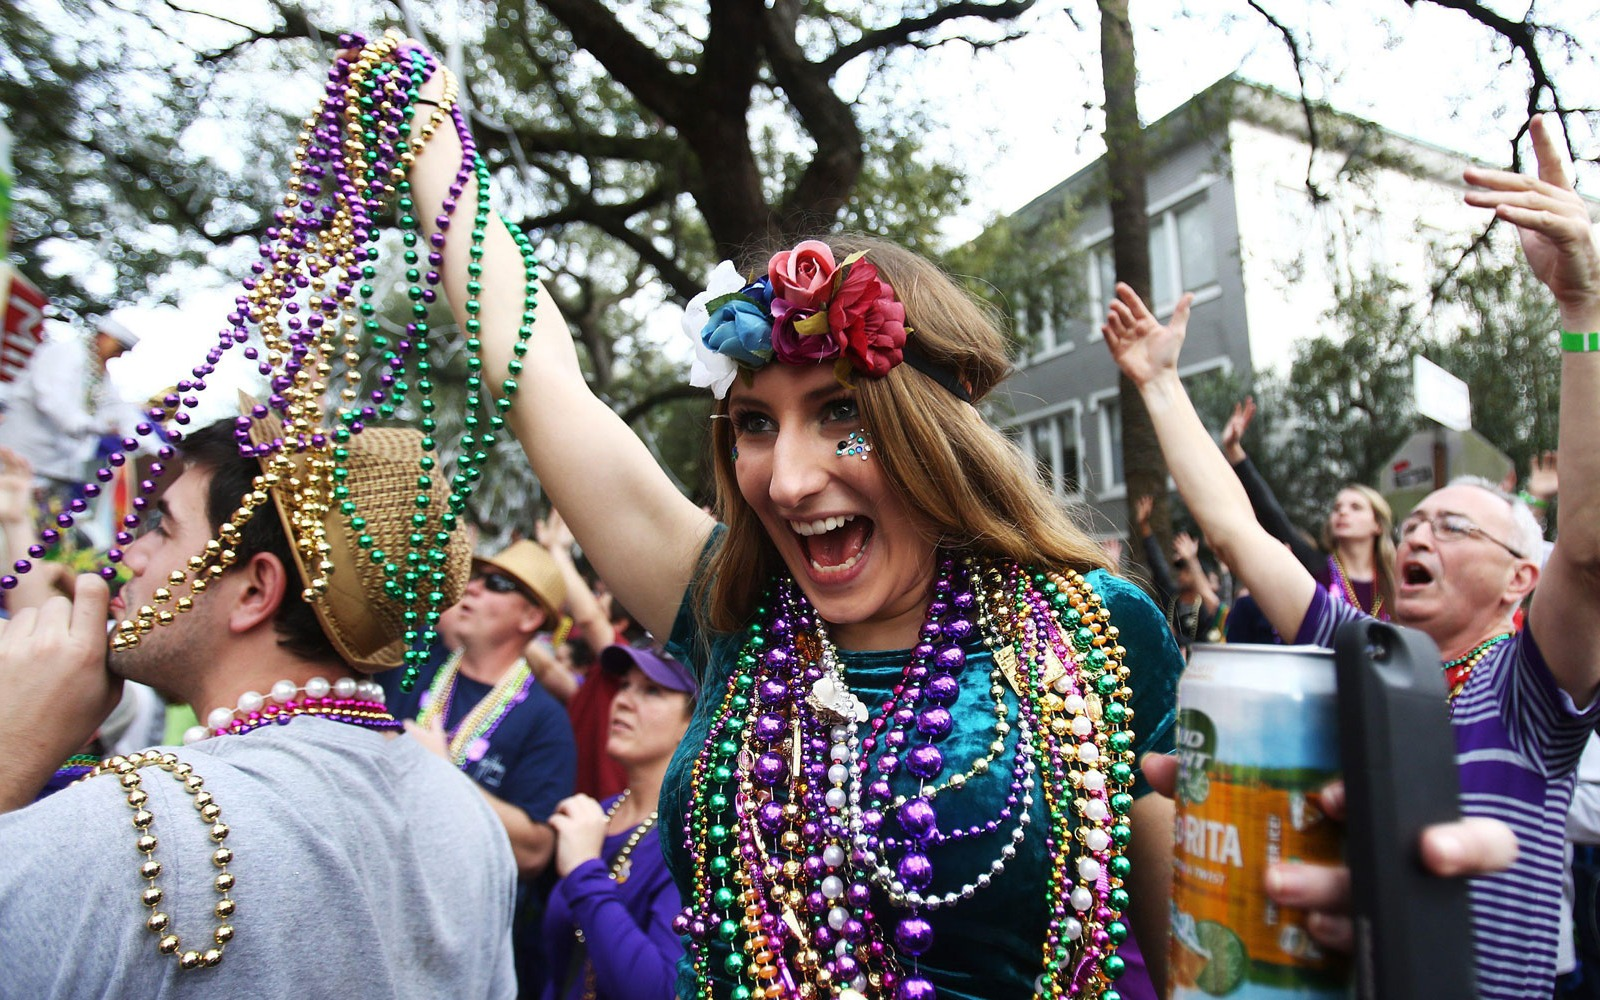 New Orleans Mardi Gras carnival goers with beads and headresses